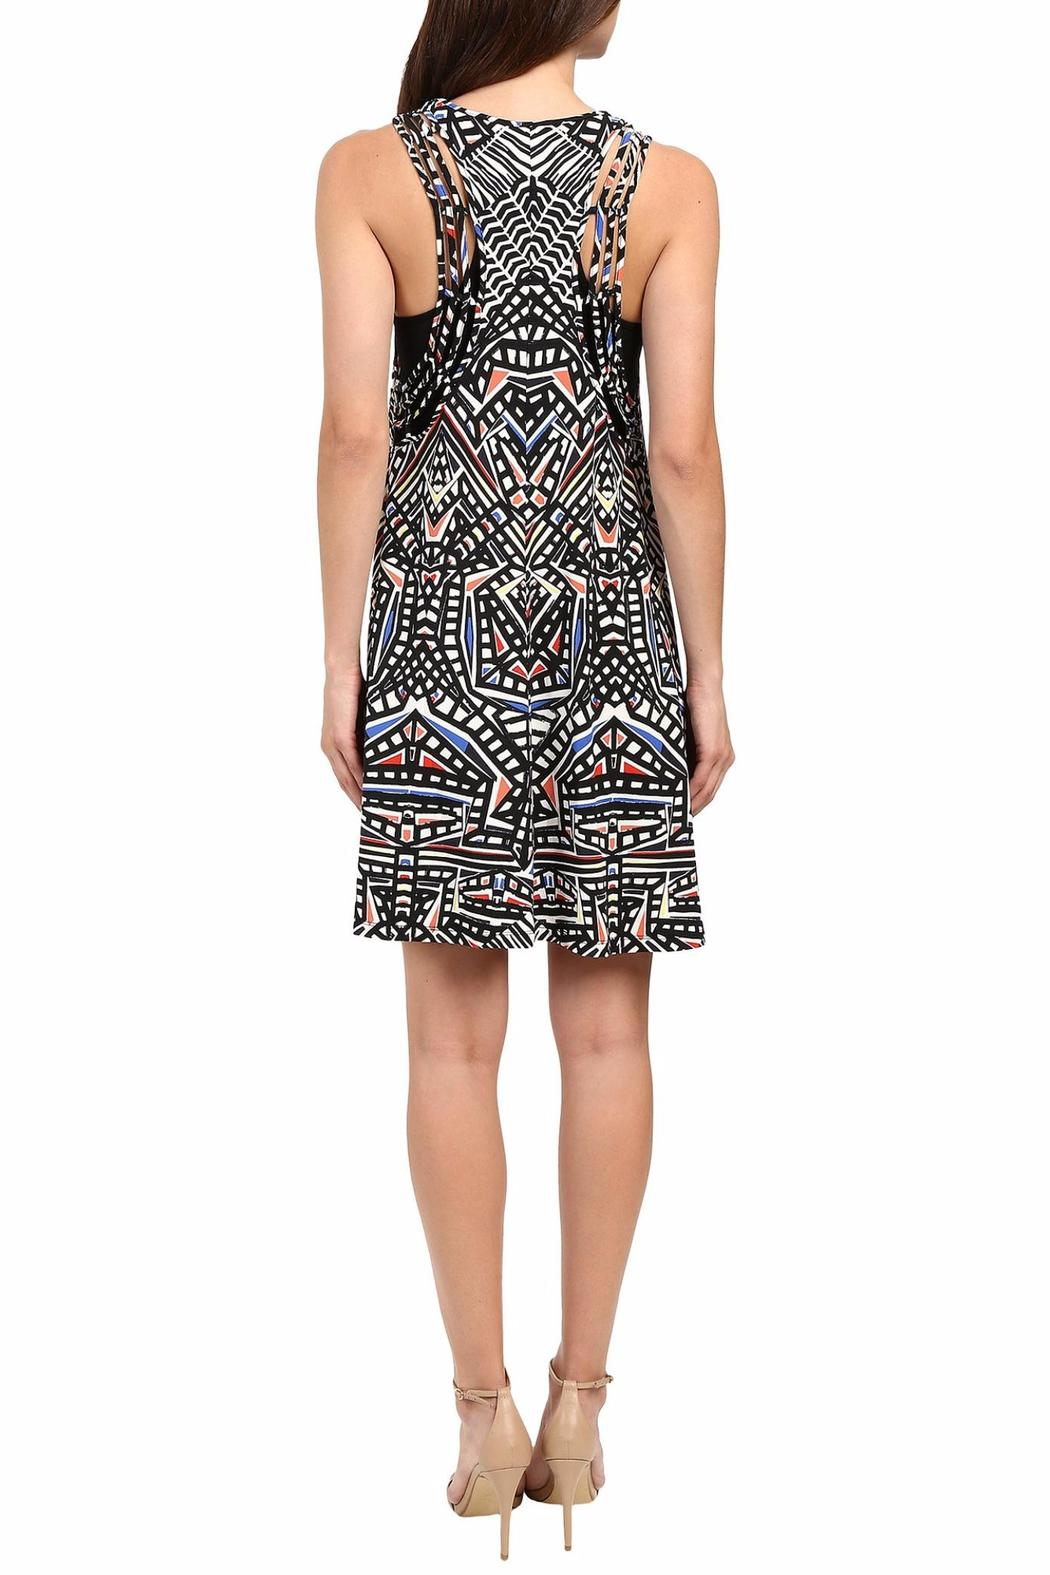 Tart Collections Geometric Swing Dress - Side Cropped Image